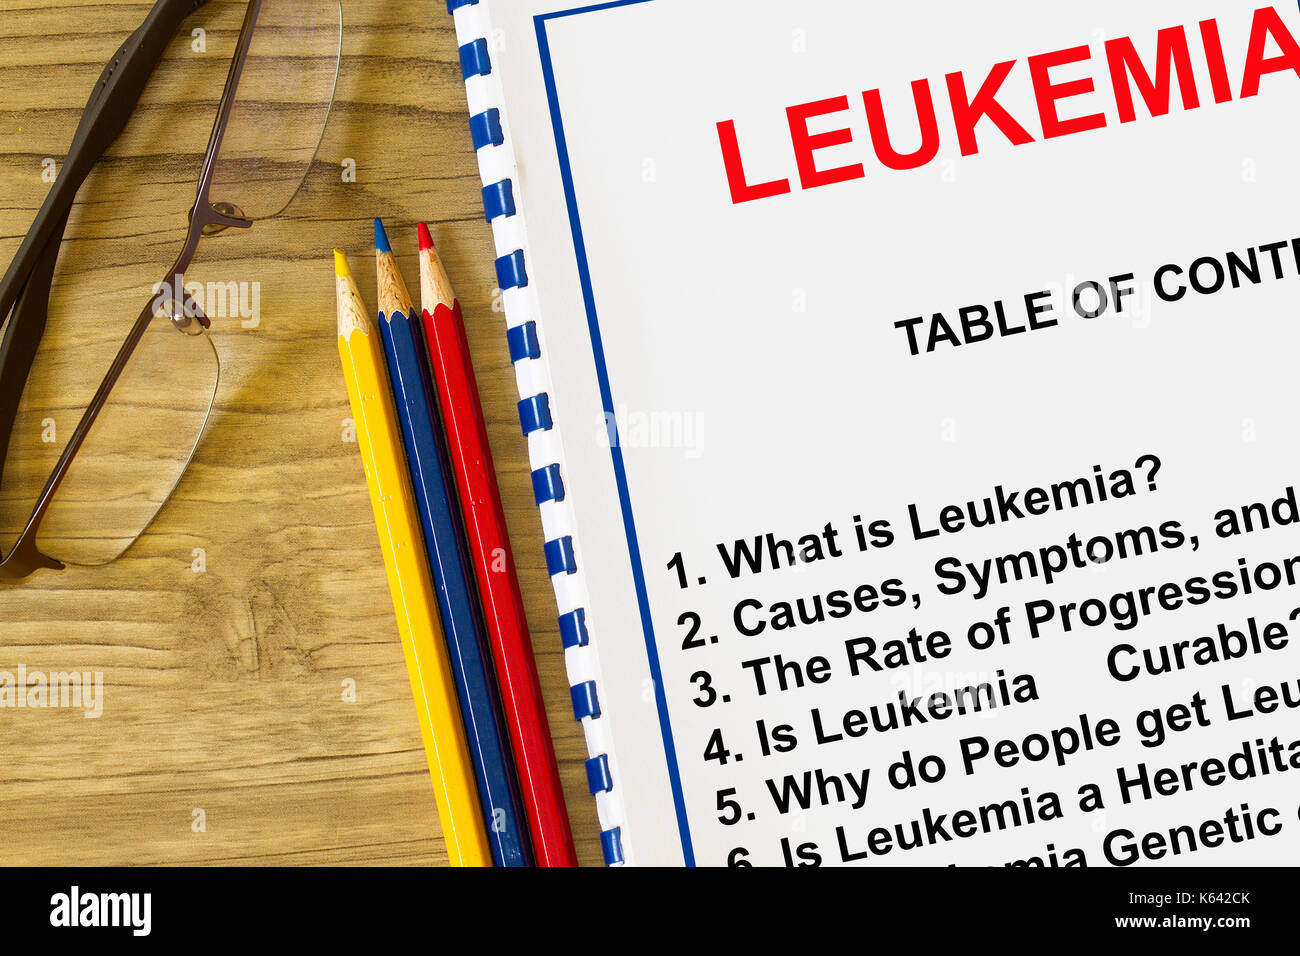 What is leukemia concept- with subjects on a cover sheet of lecture. - Stock Image